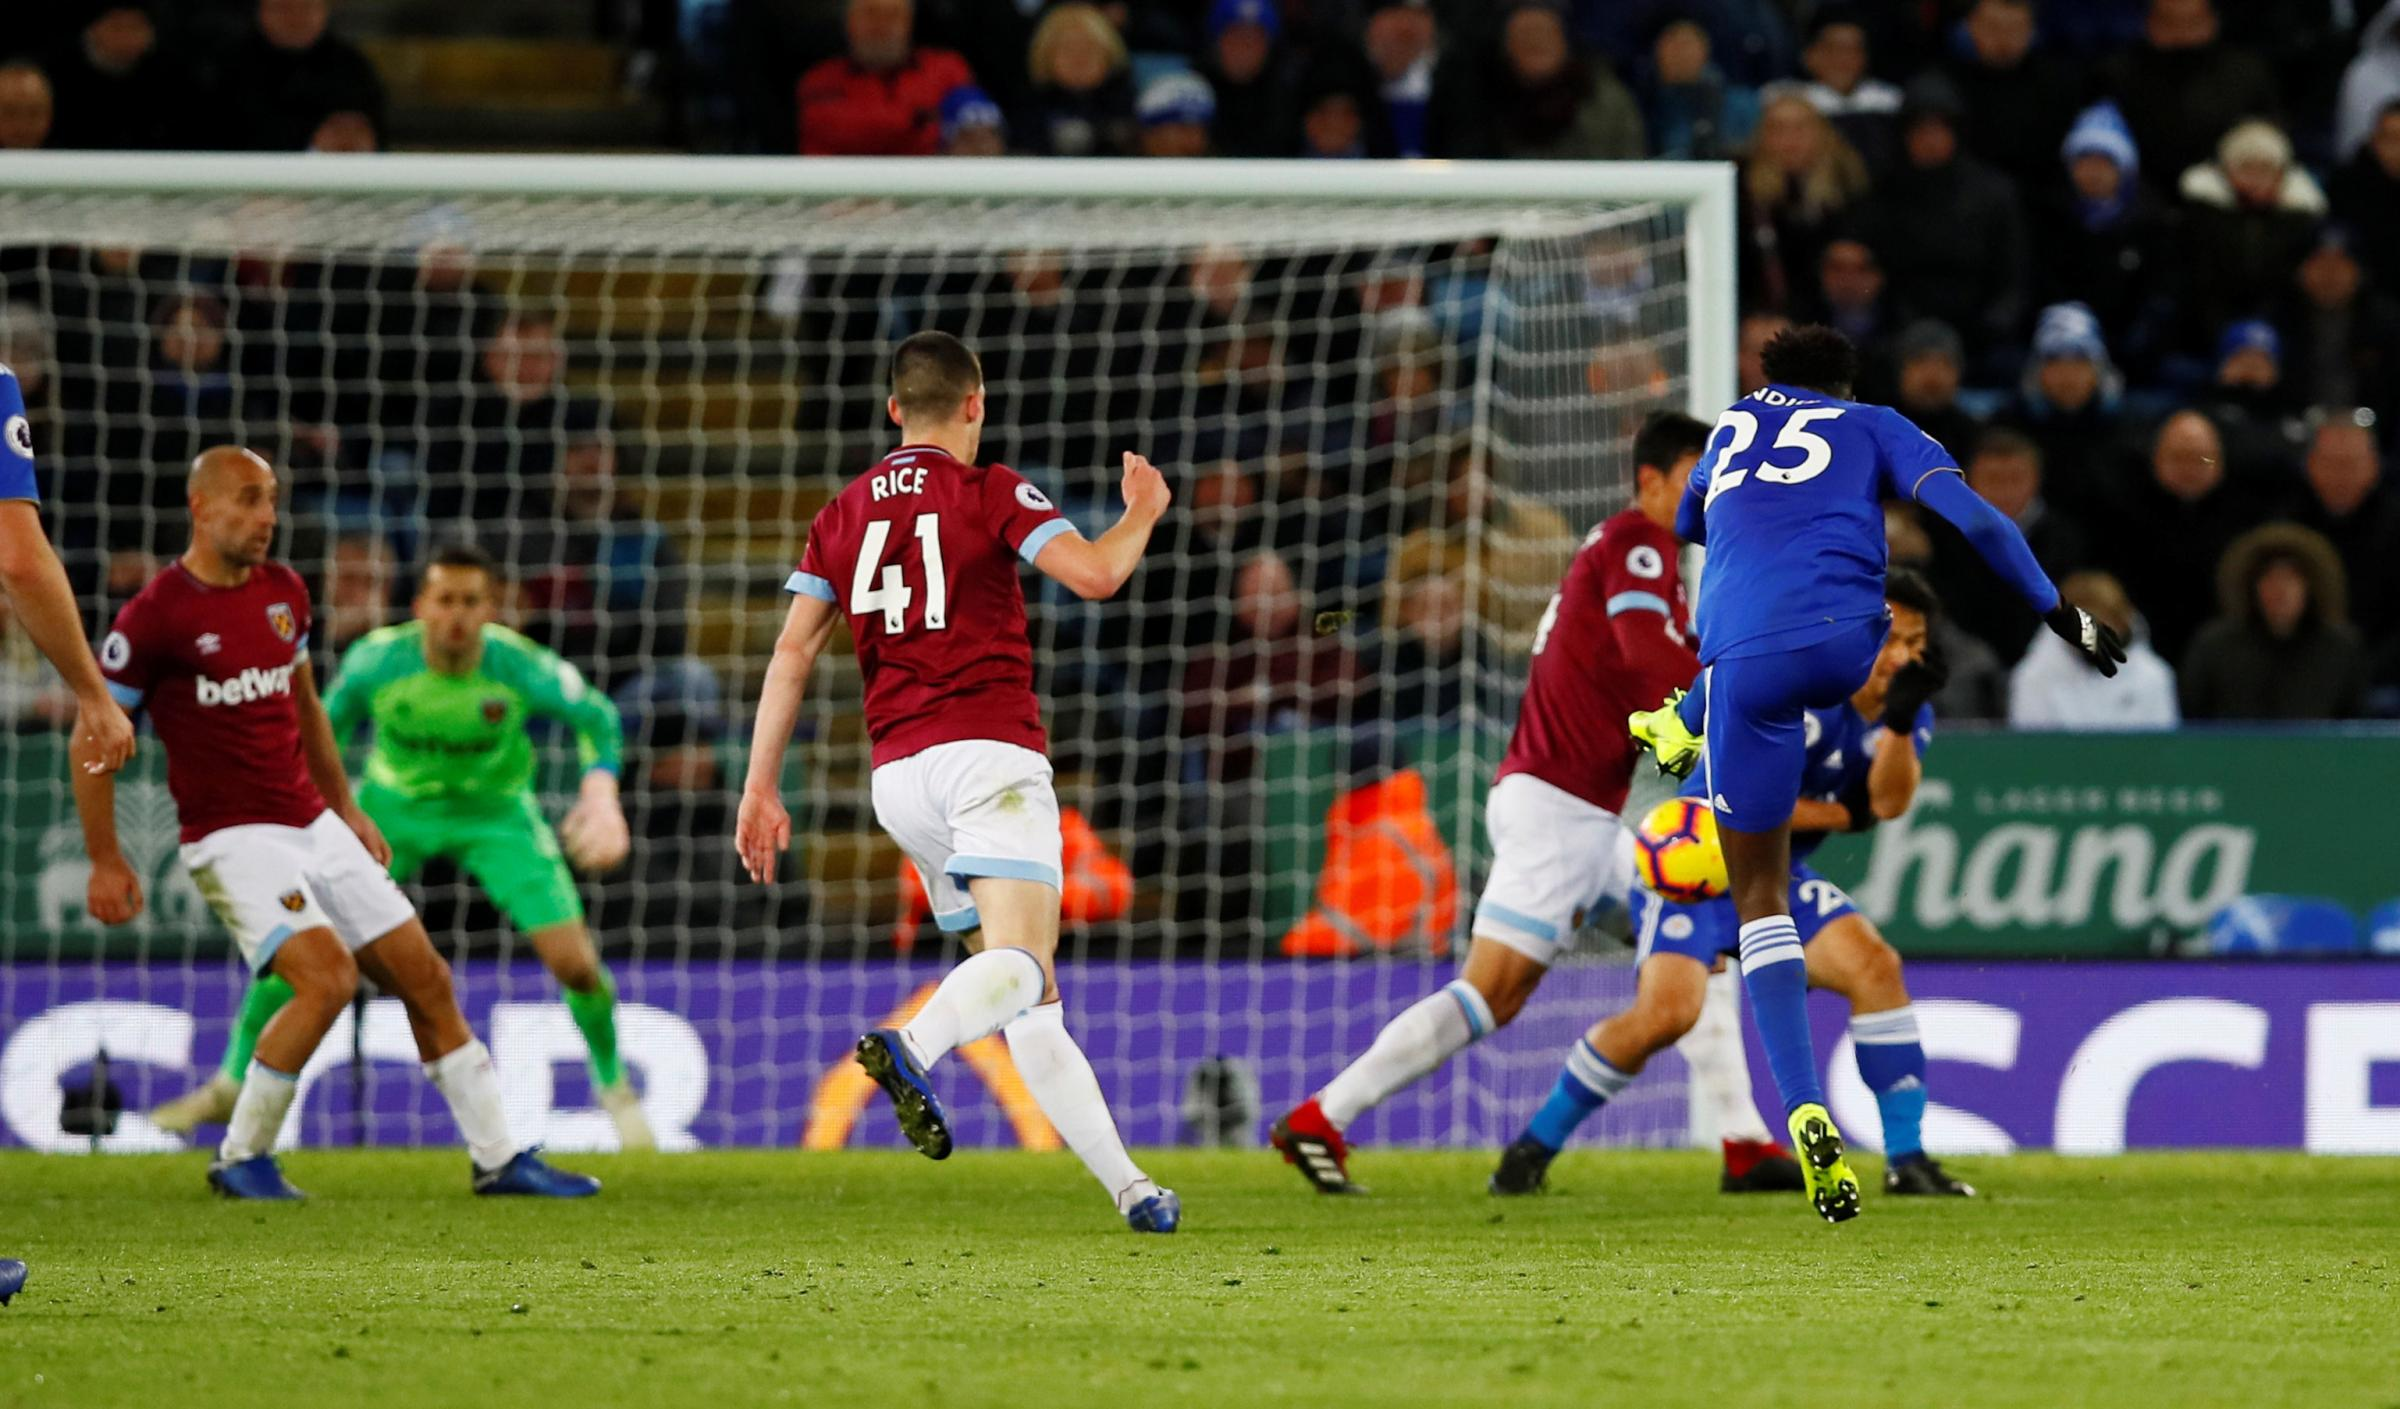 West Ham were pegged back by Wilfred Ndidi's late equaliser. Picture: Action Images